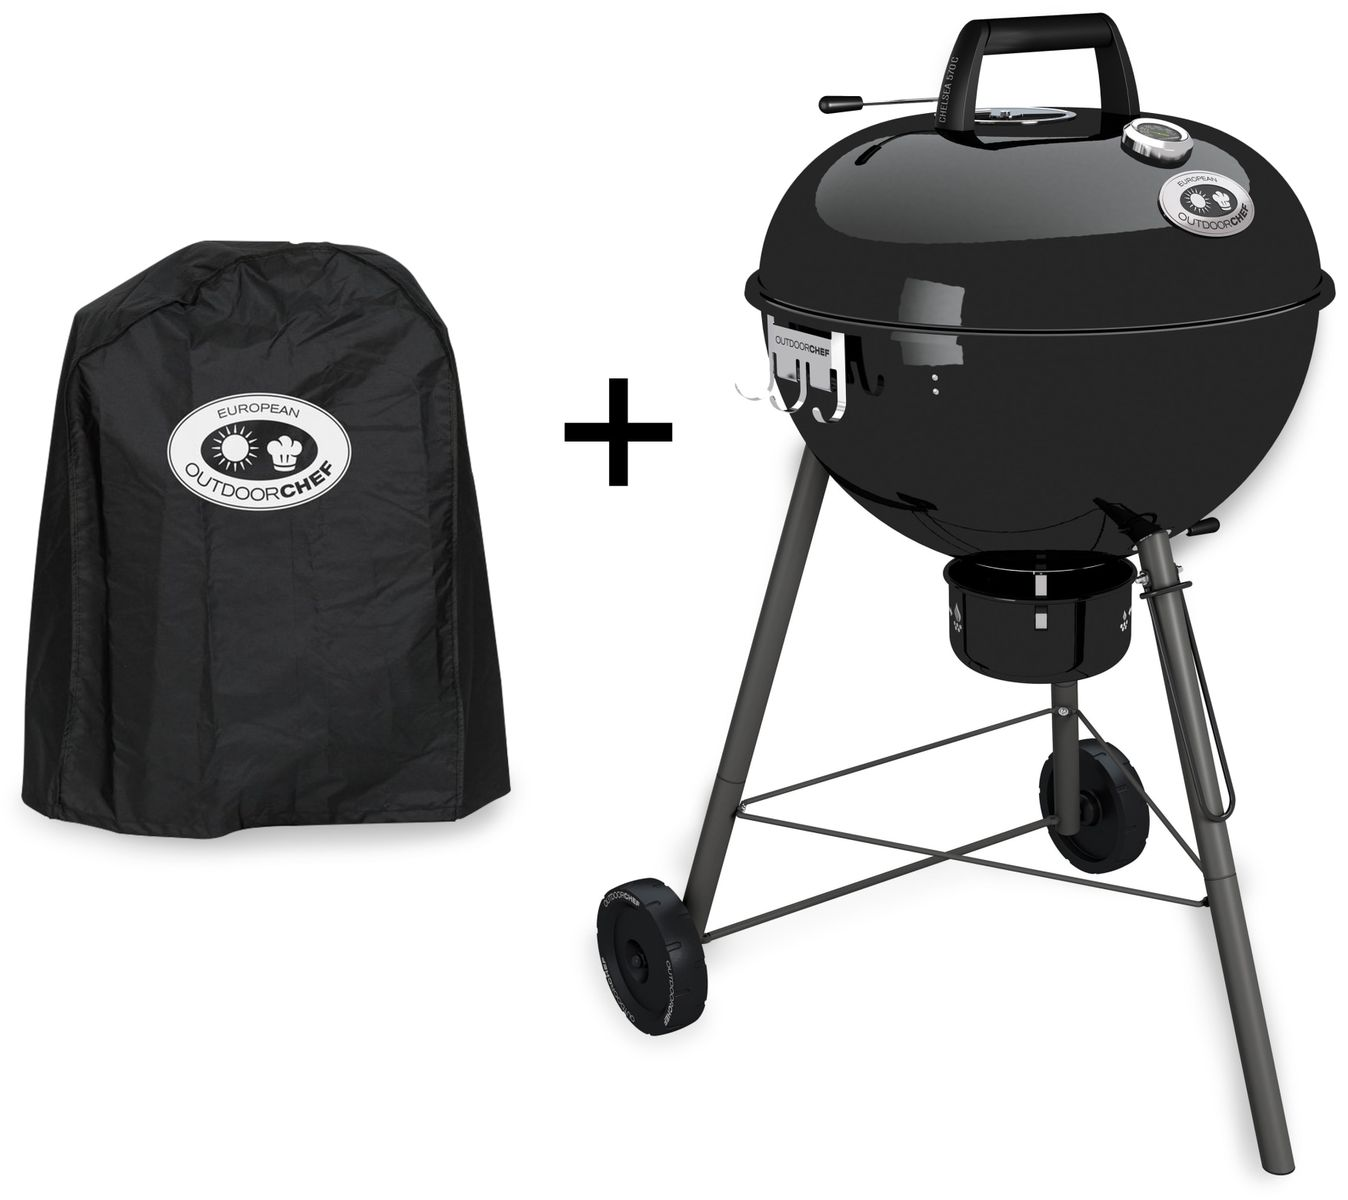 Grill OUTDOORCHEF Chelsea 570 C